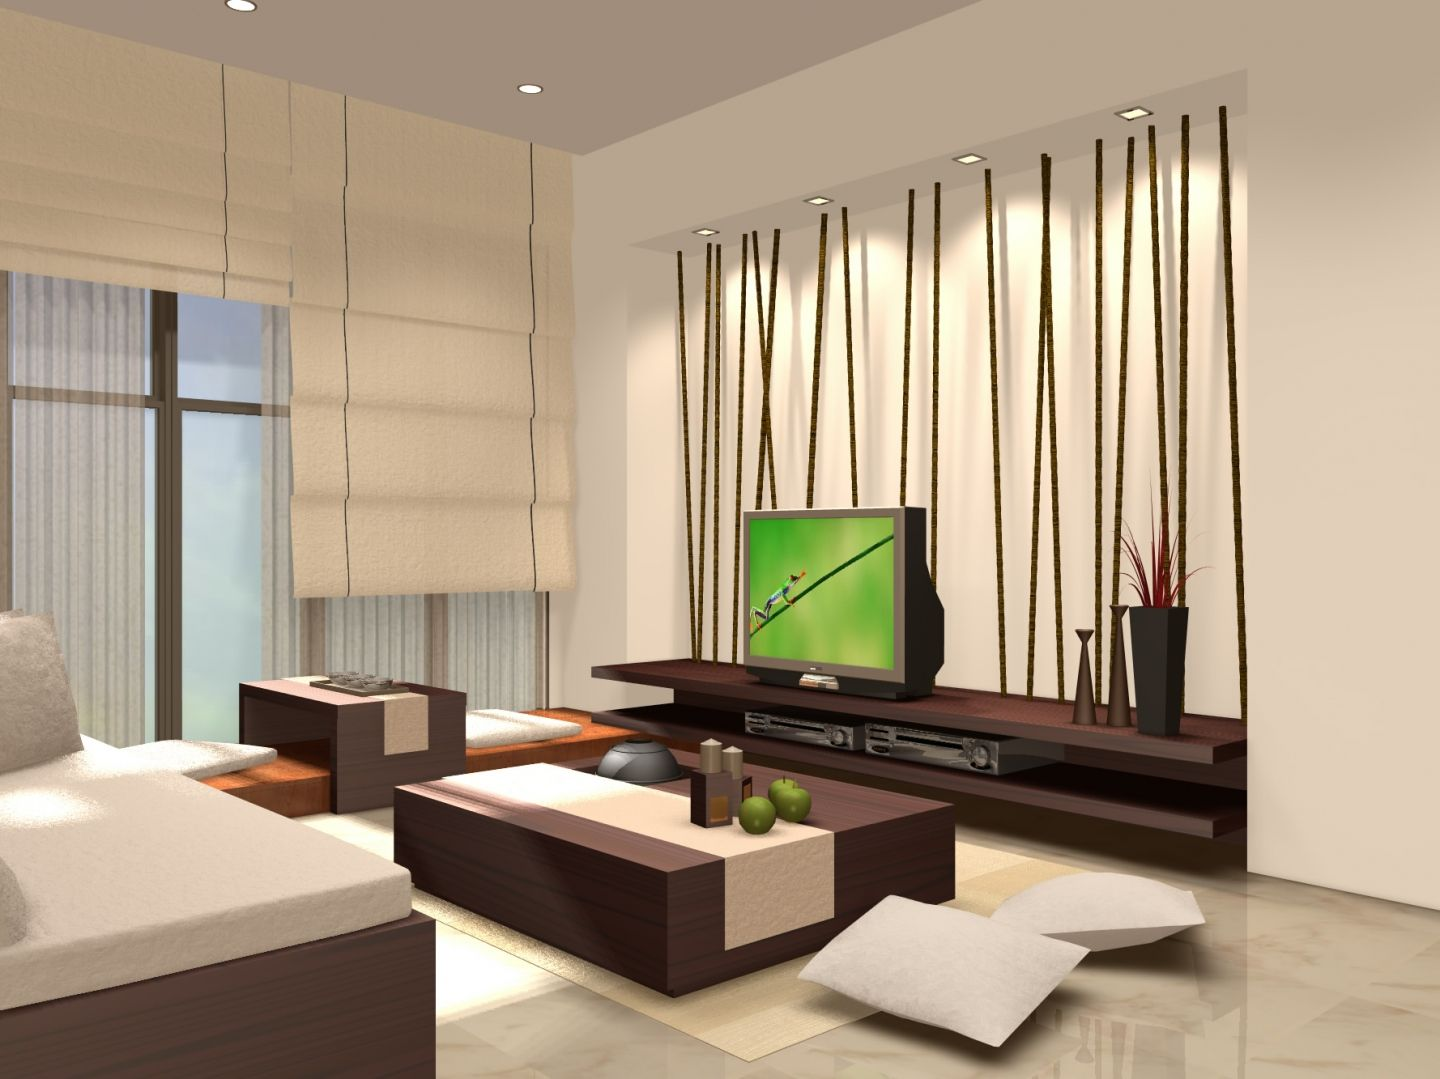 Pin By Monica Sotelo On Int Decor Japanese Style Pinterest